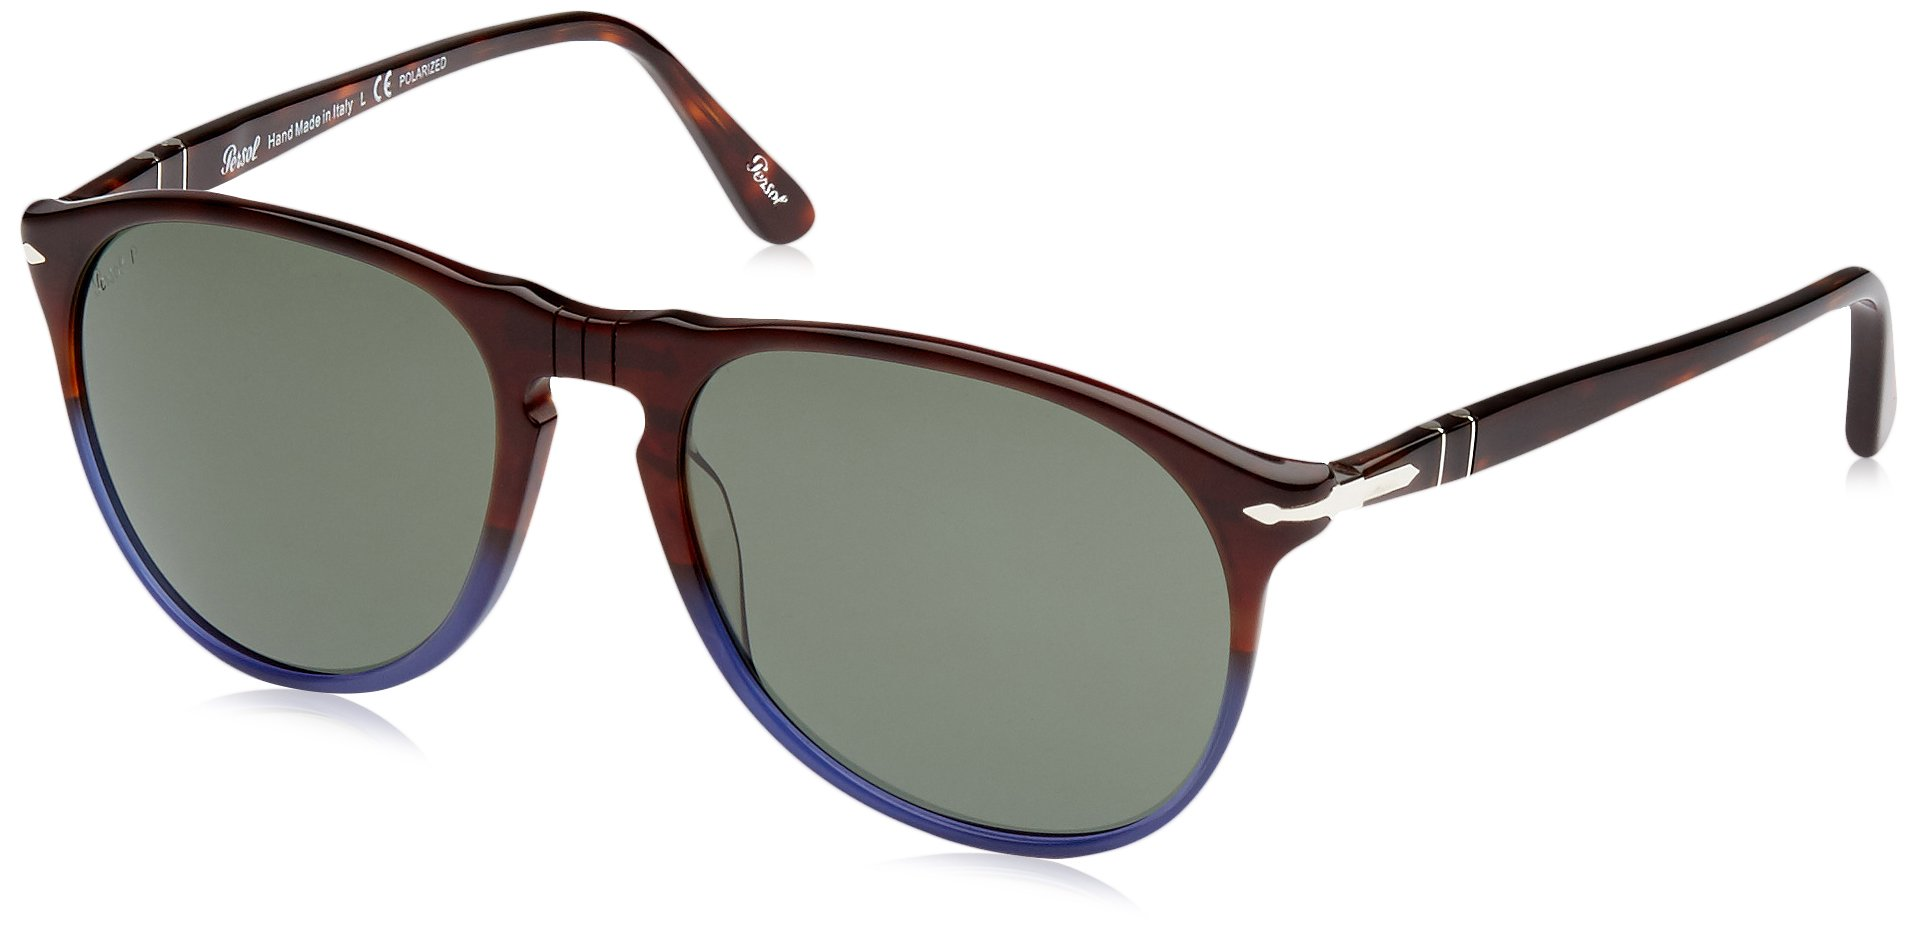 Persol Mens Sunglasses (PO9649S (55)) Blue/Grey Acetate - Polarized - 55mm by Persol